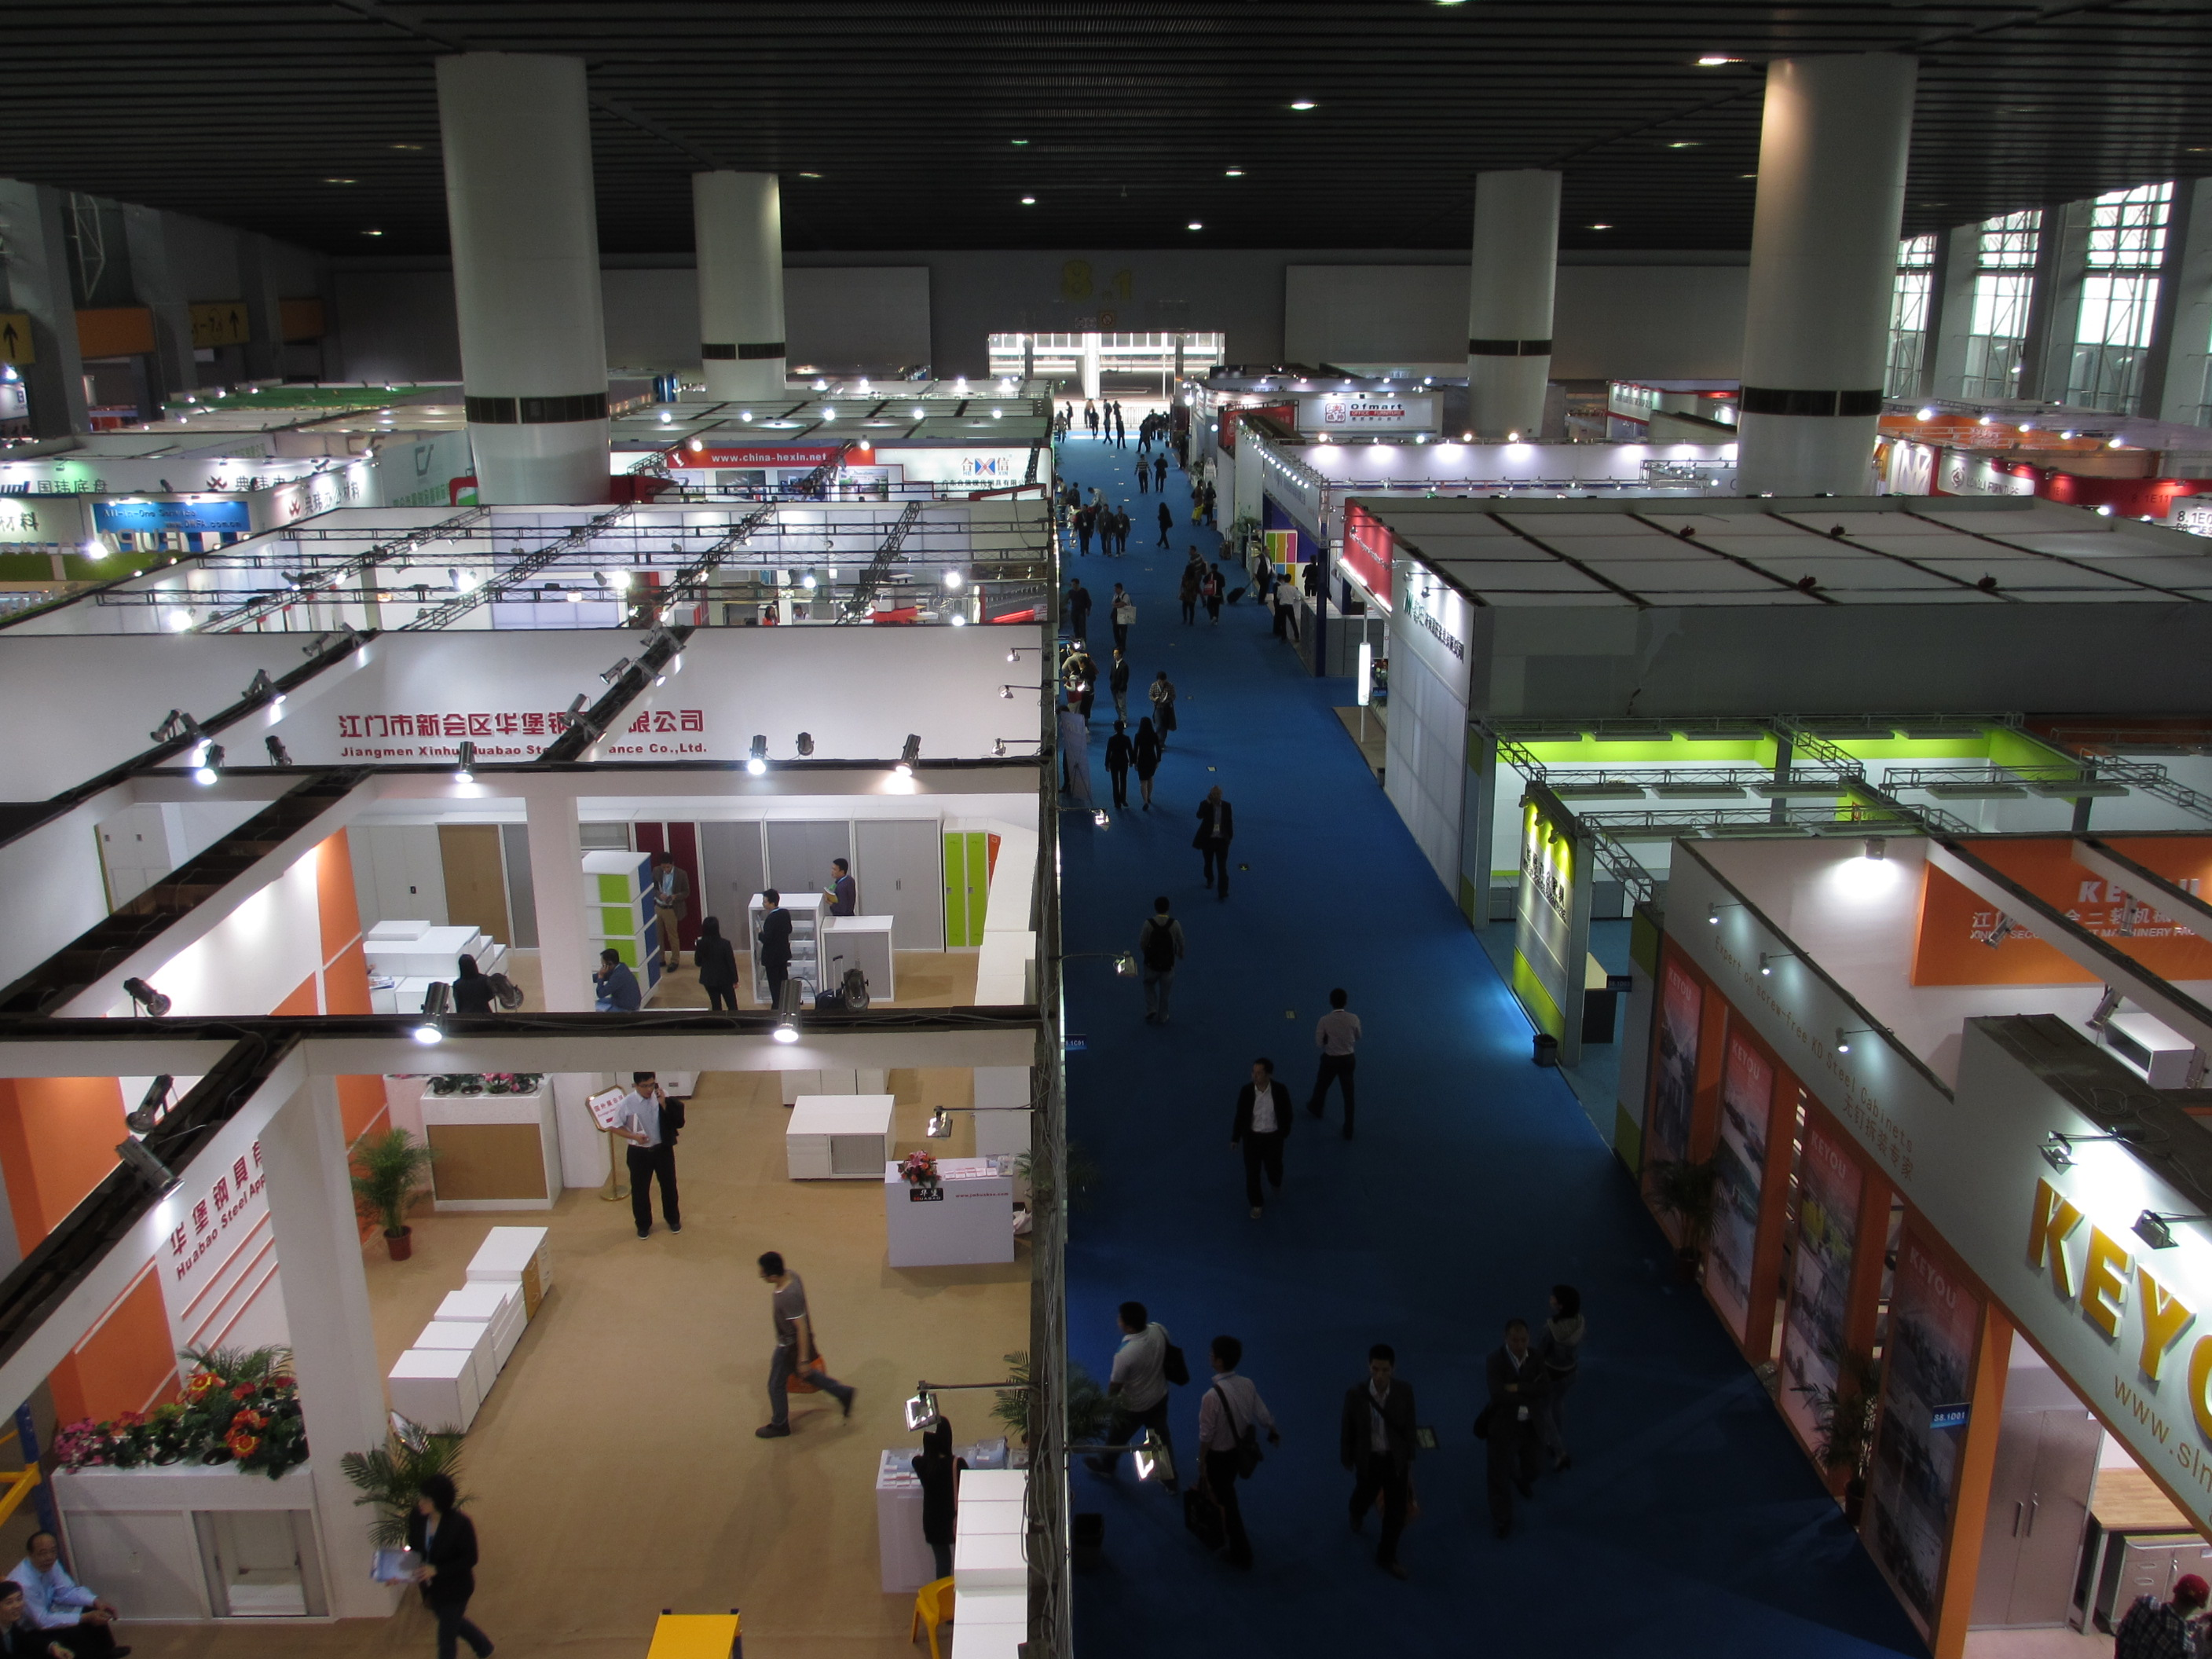 office furniture trade shows. office furniture trade shows museum crowded w